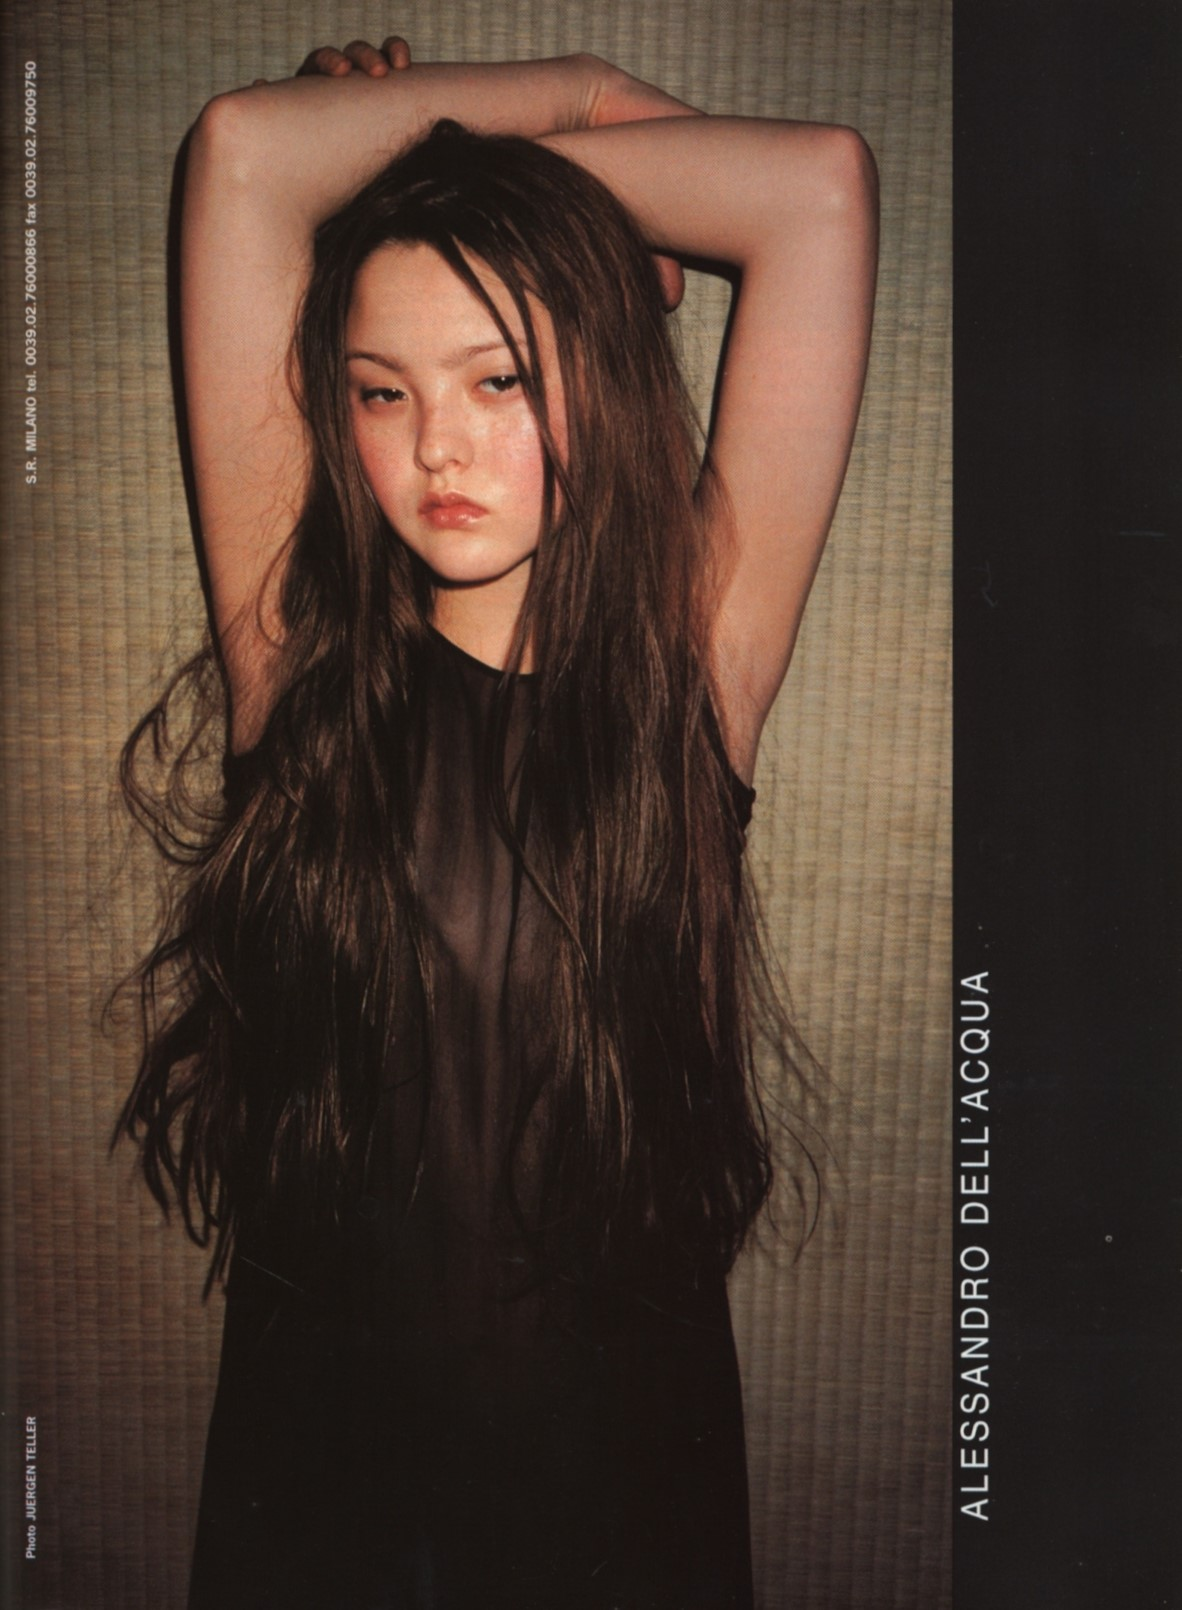 DEVON AOKI | PHOTOGRAPHY JUERGEN TELLER | ALESSANDRO DELL'ACQUA AD CAMPAIGN | VOGUE ITALIA N.576 | AUGUST 1998